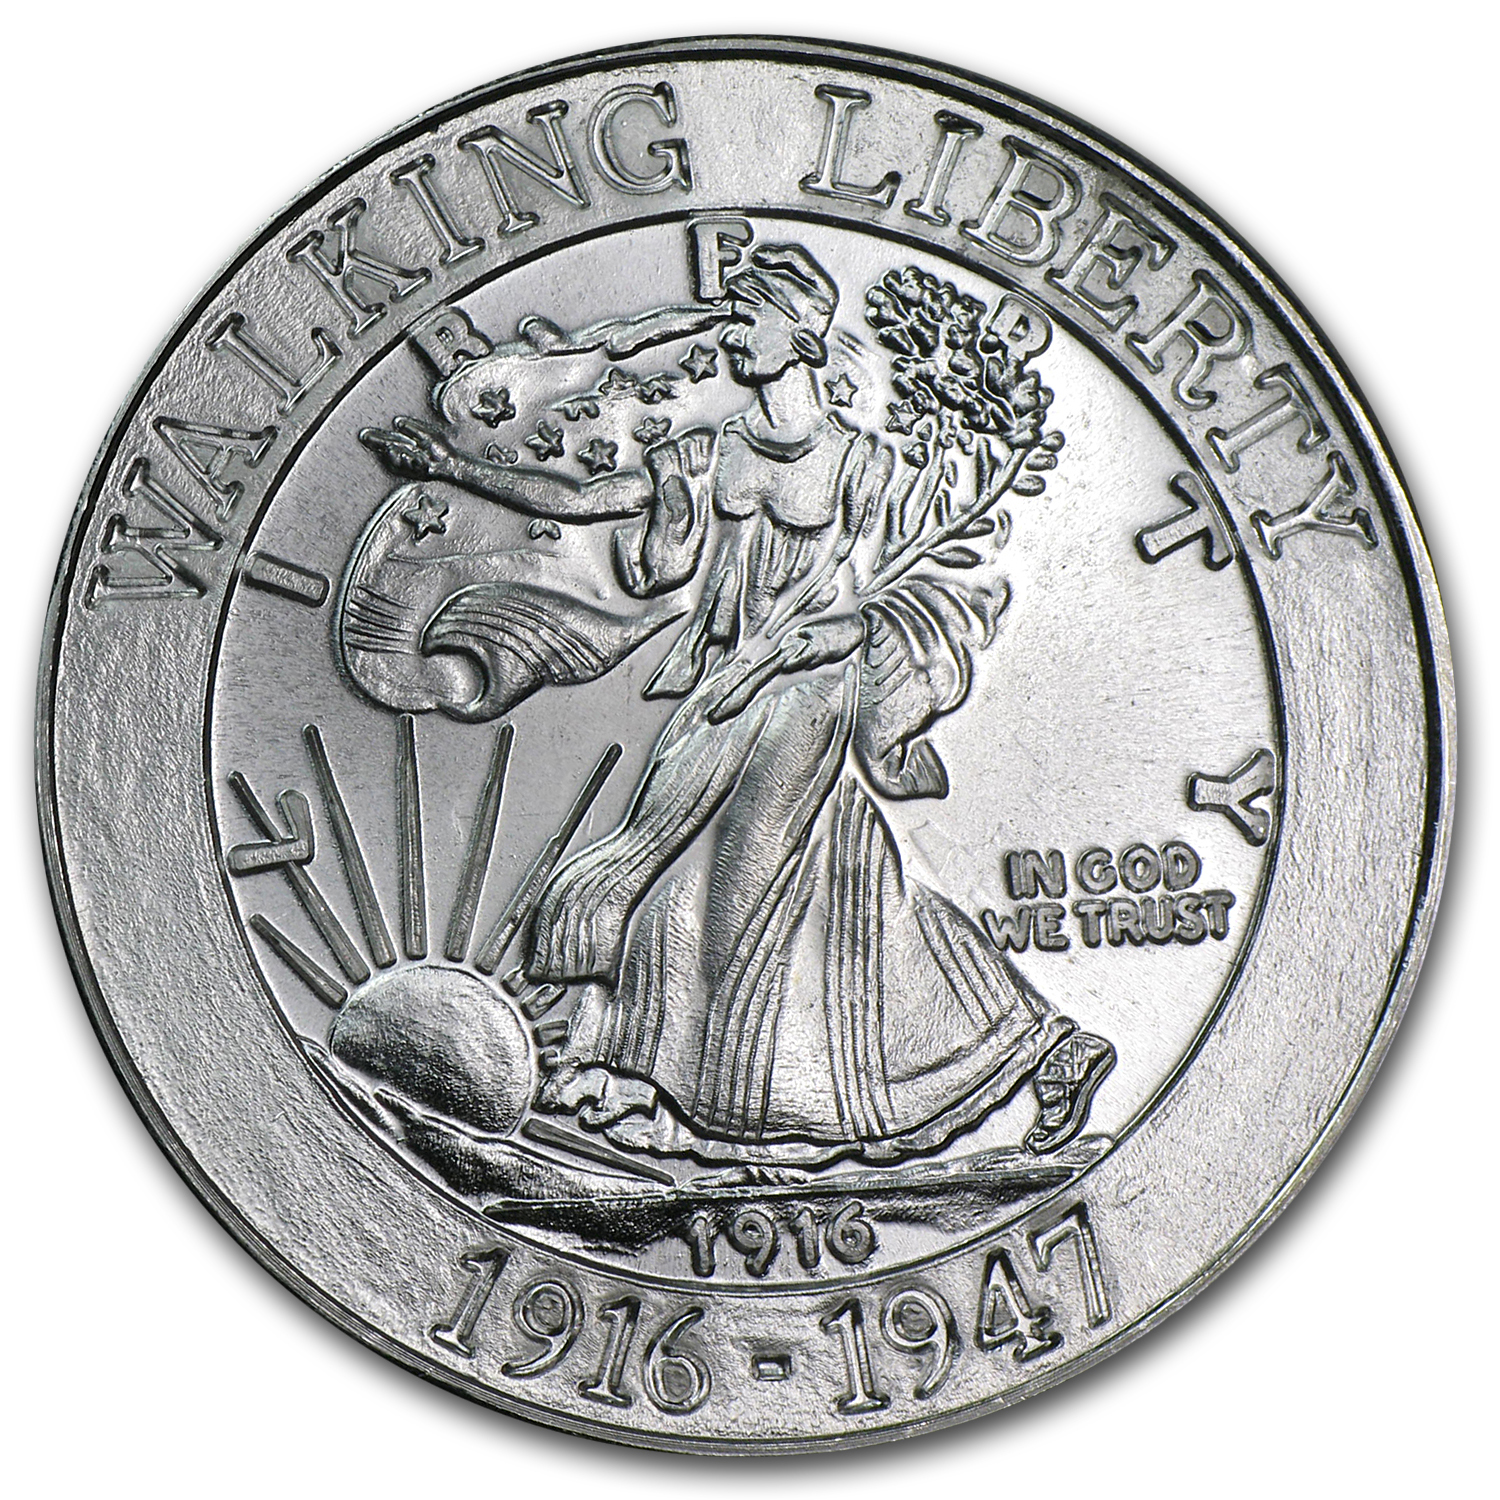 1 oz Silver Round - Walking Liberty